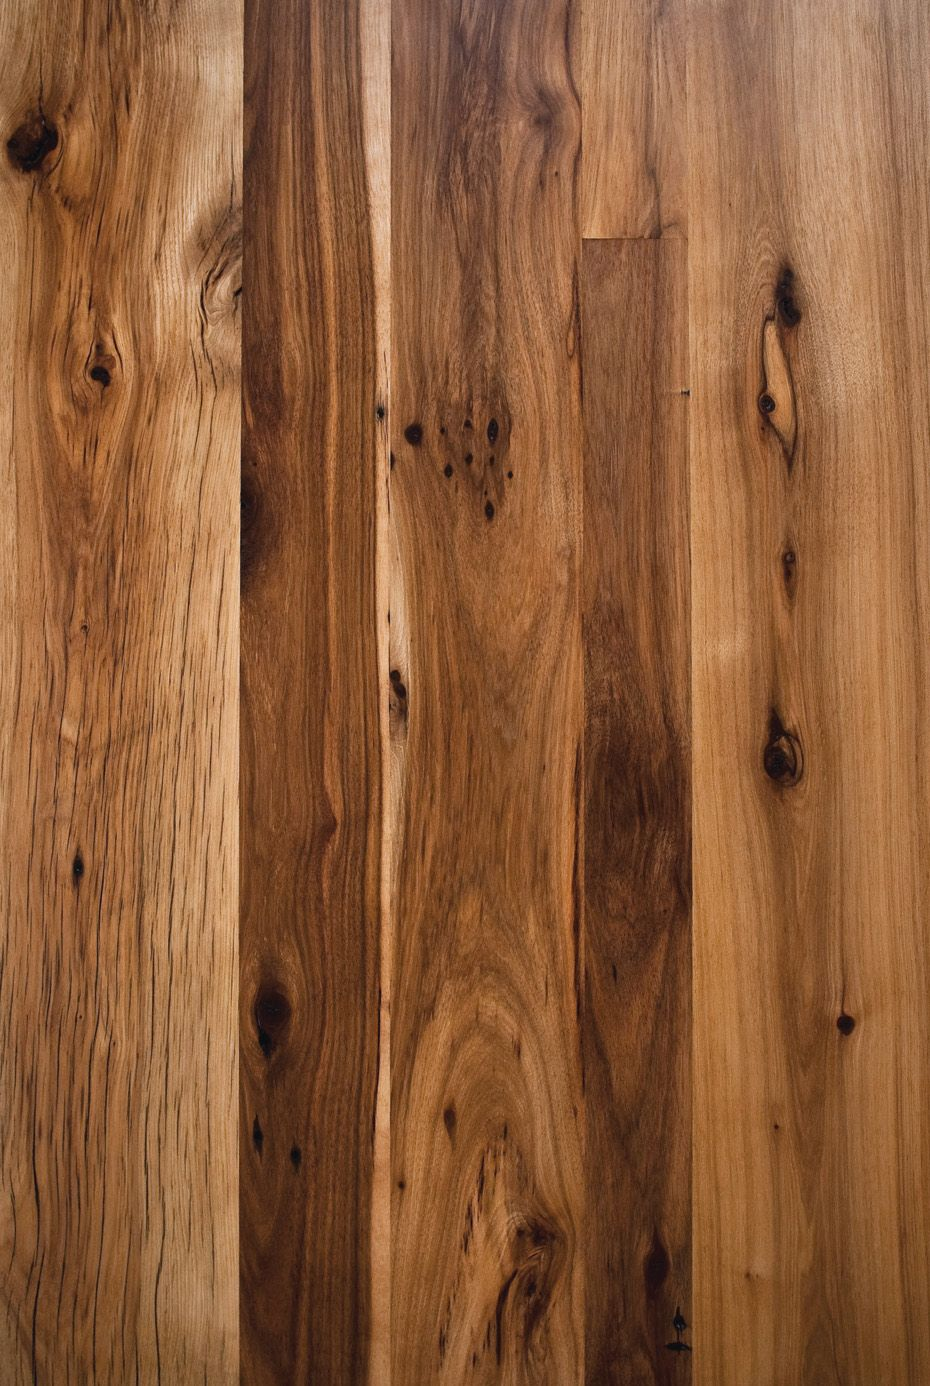 Hickory wood floors reclaimed antique flooring hickory for Reclaimed wood decking